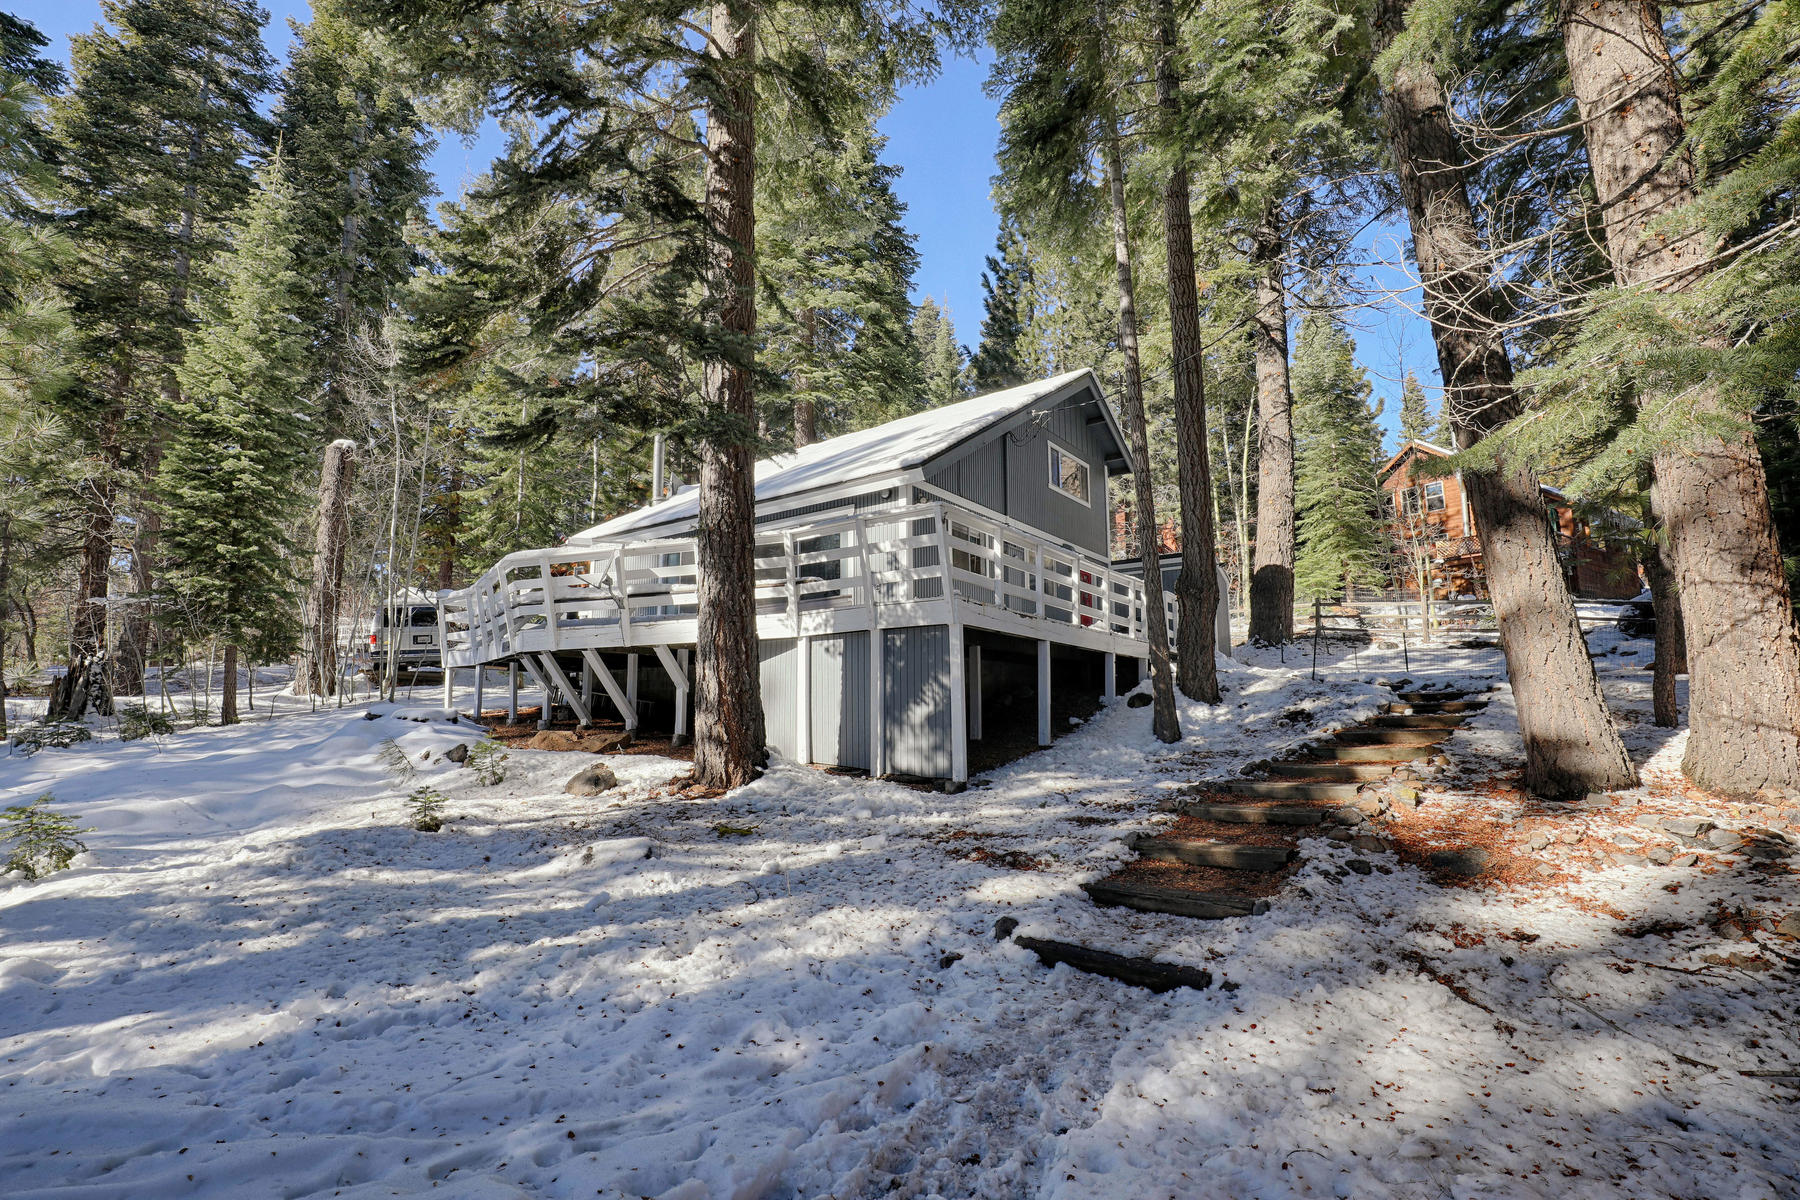 Additional photo for property listing at 11312 Silver Fir Drive, Truckee, CA 11312 Silver Fir Drive Truckee, California 96161 United States